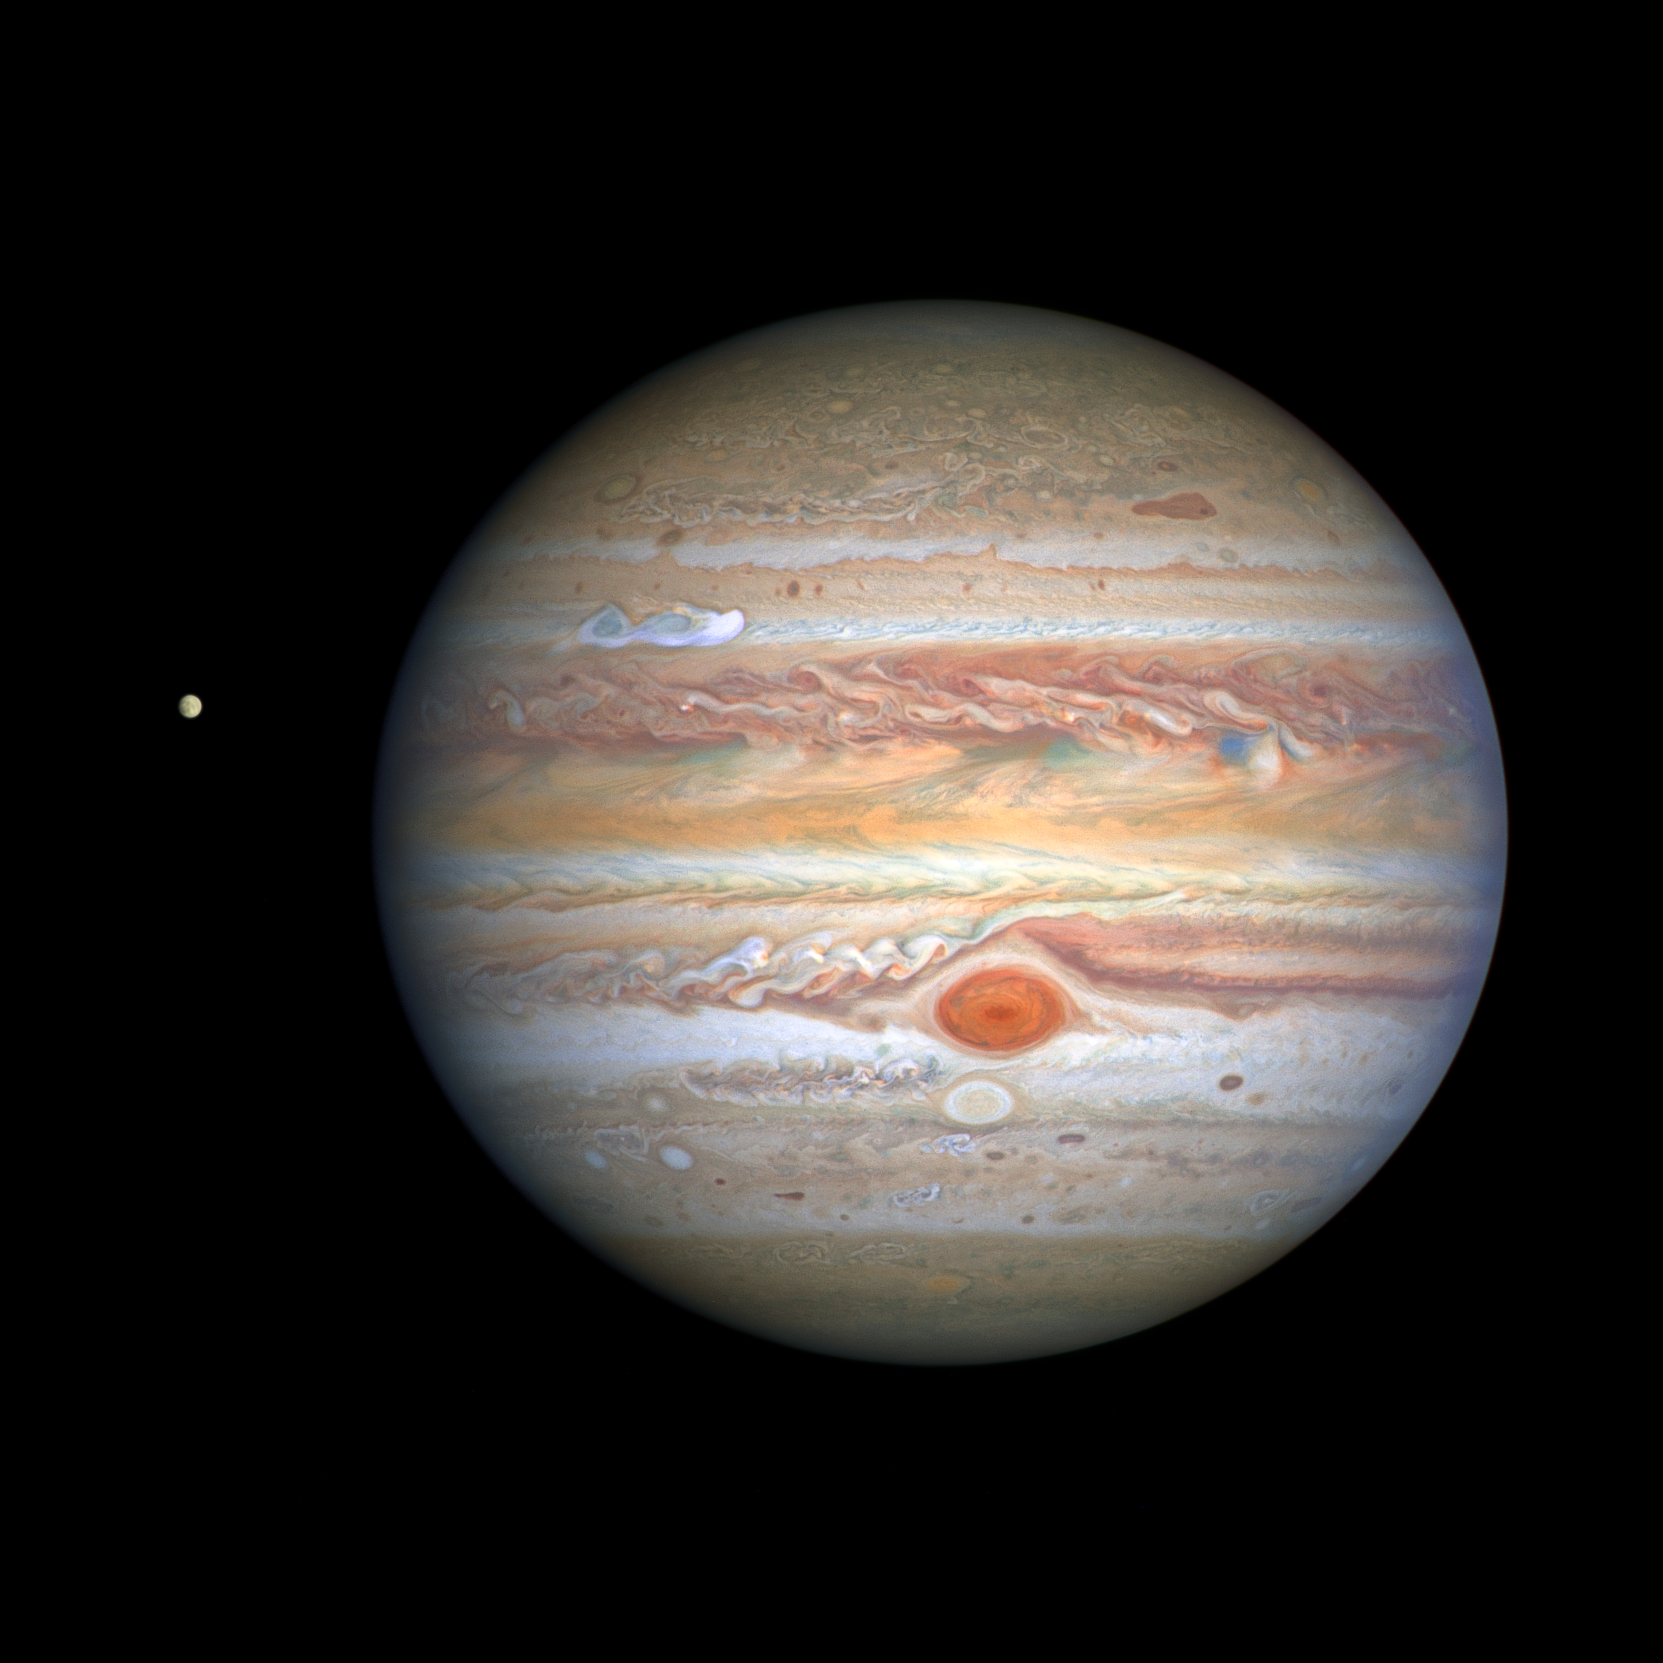 In 2022, ESA will launch a spacecraft called JUICE to explore Jupiter's moons, including Europa (left). Image credit - NASA, ESA, STScI, A. Simon (Goddard Space Flight Center), and M.H. Wong (University of California, Berkeley) and the OPAL team